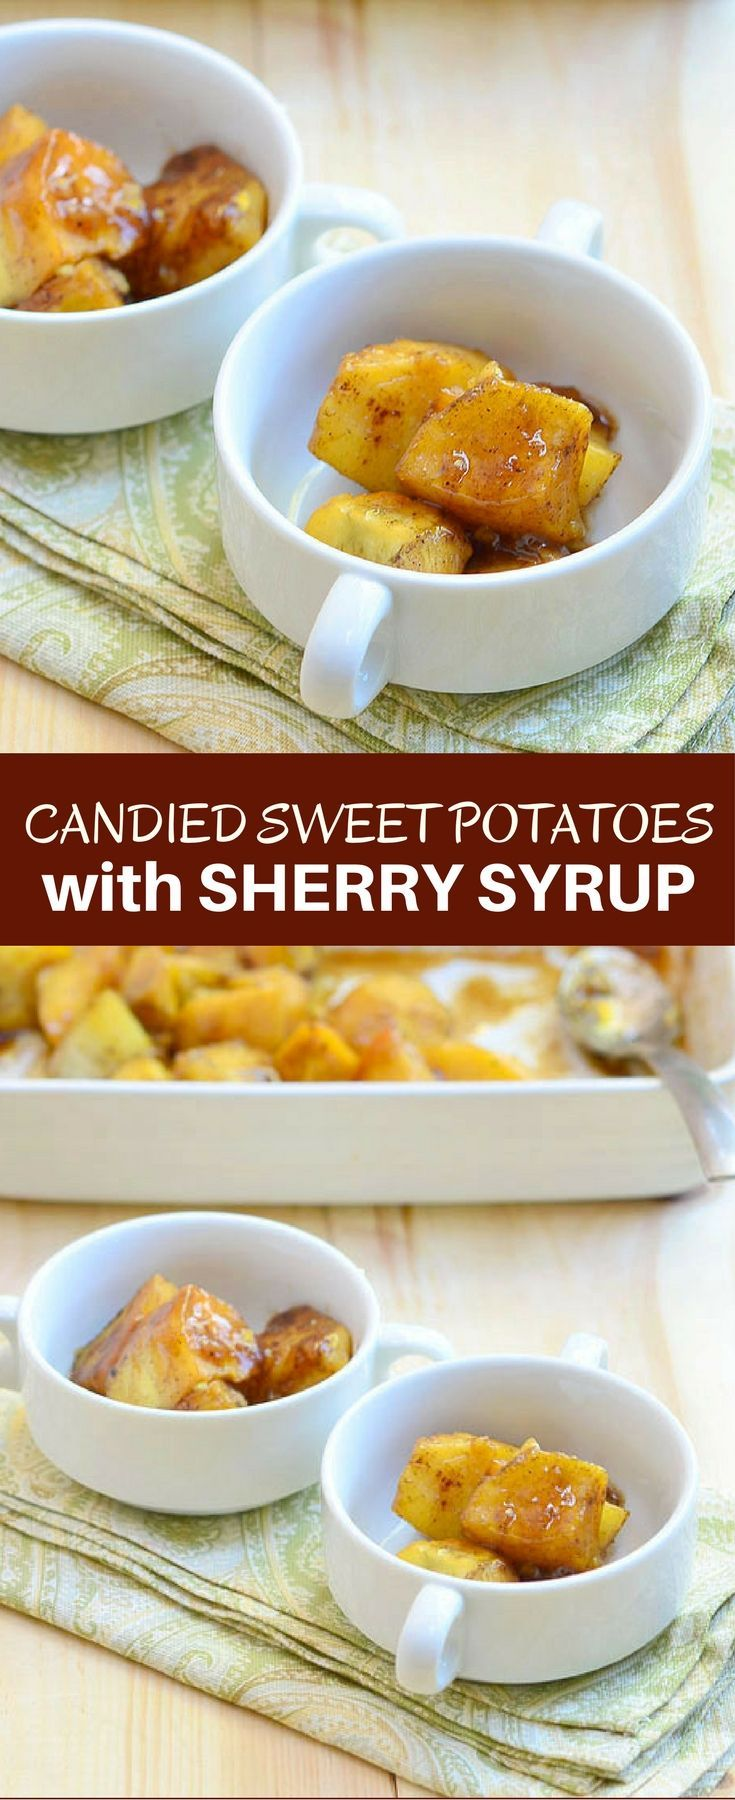 Best 25+ Candied sweet potatoes ideas on Pinterest | Candy ...